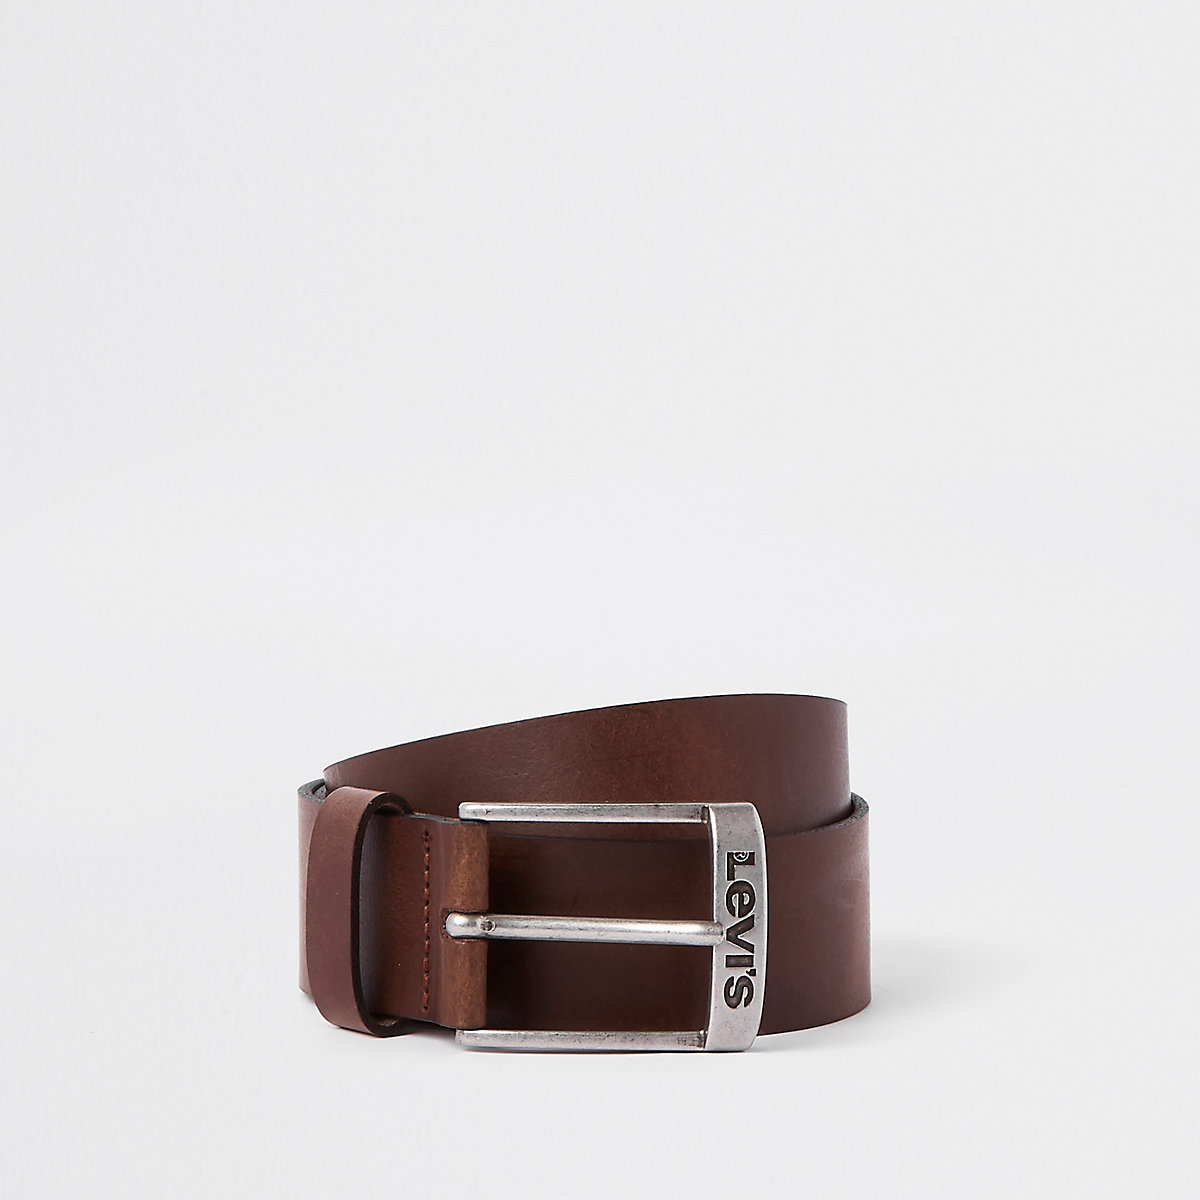 Levi's dark brown leather belt